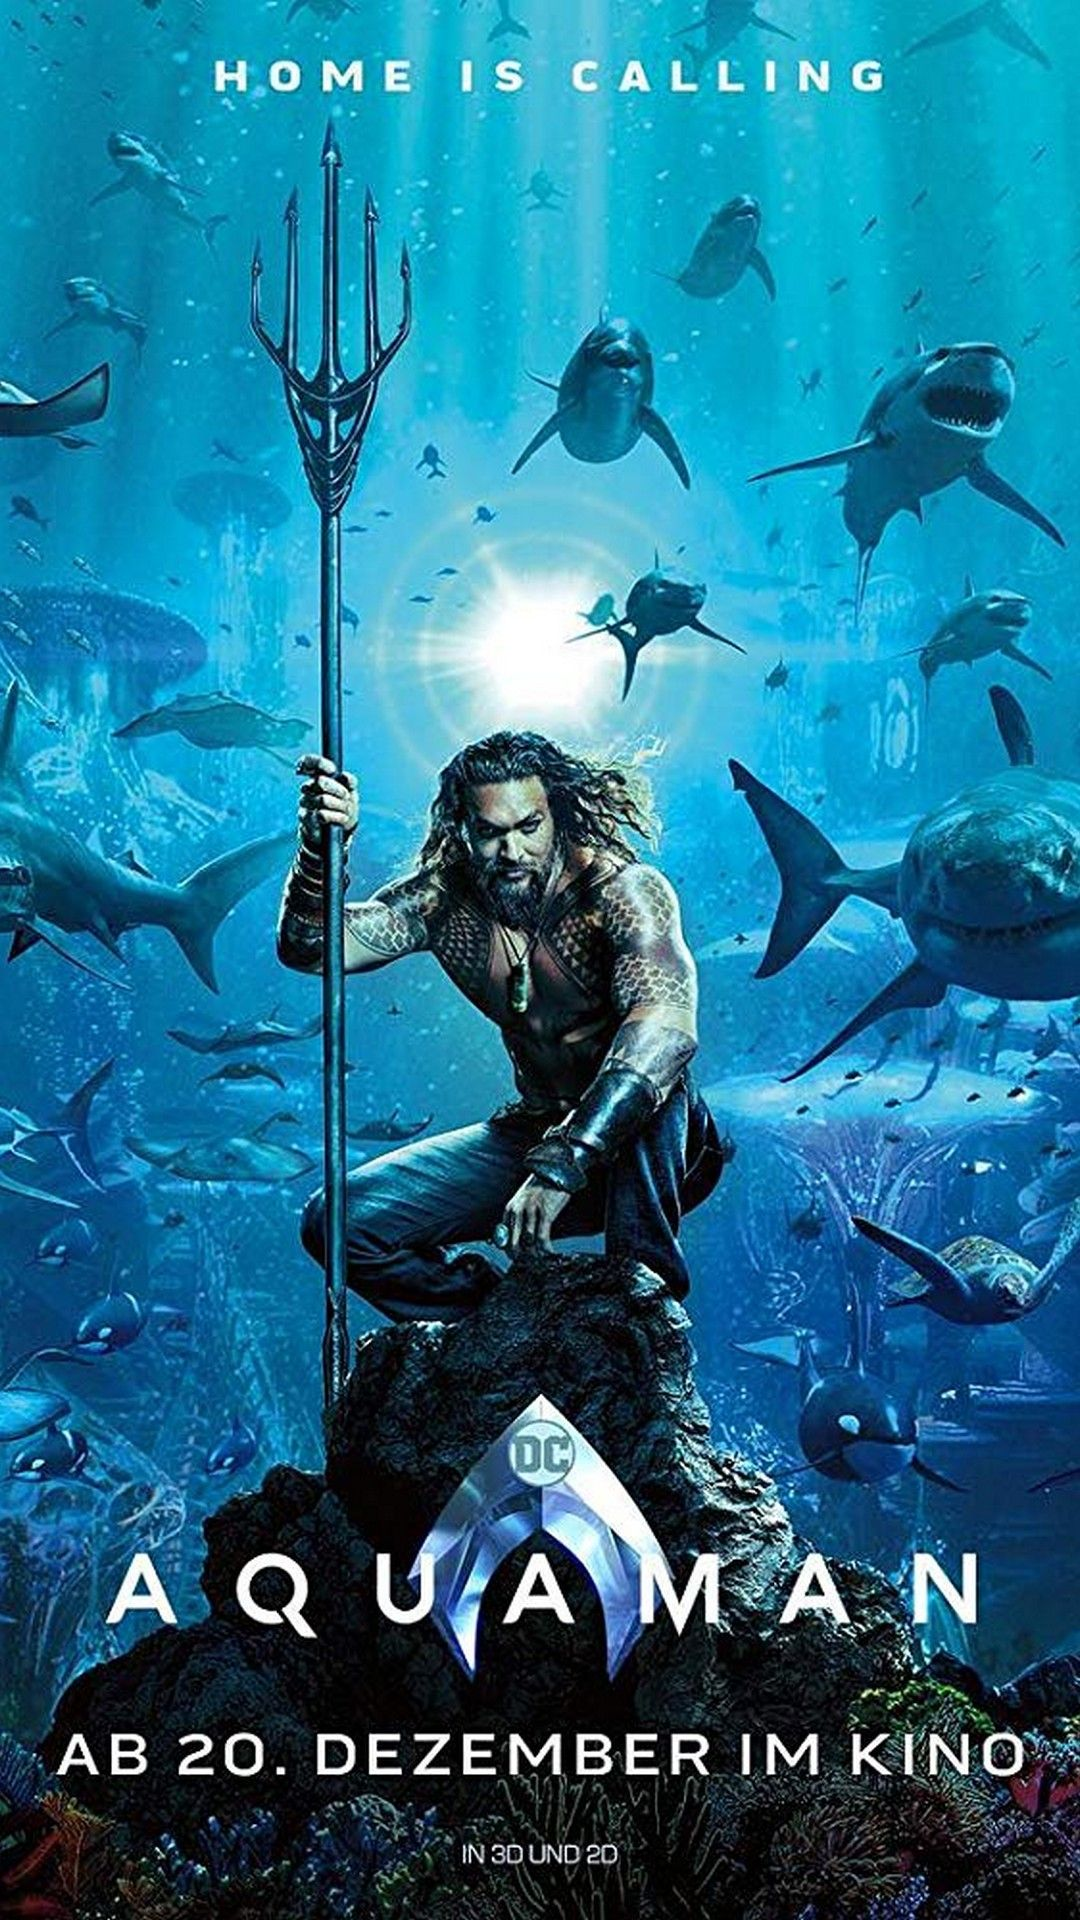 Aquaman Iphone Wallpapers With Image Resolution 1080x1920 Pixel You